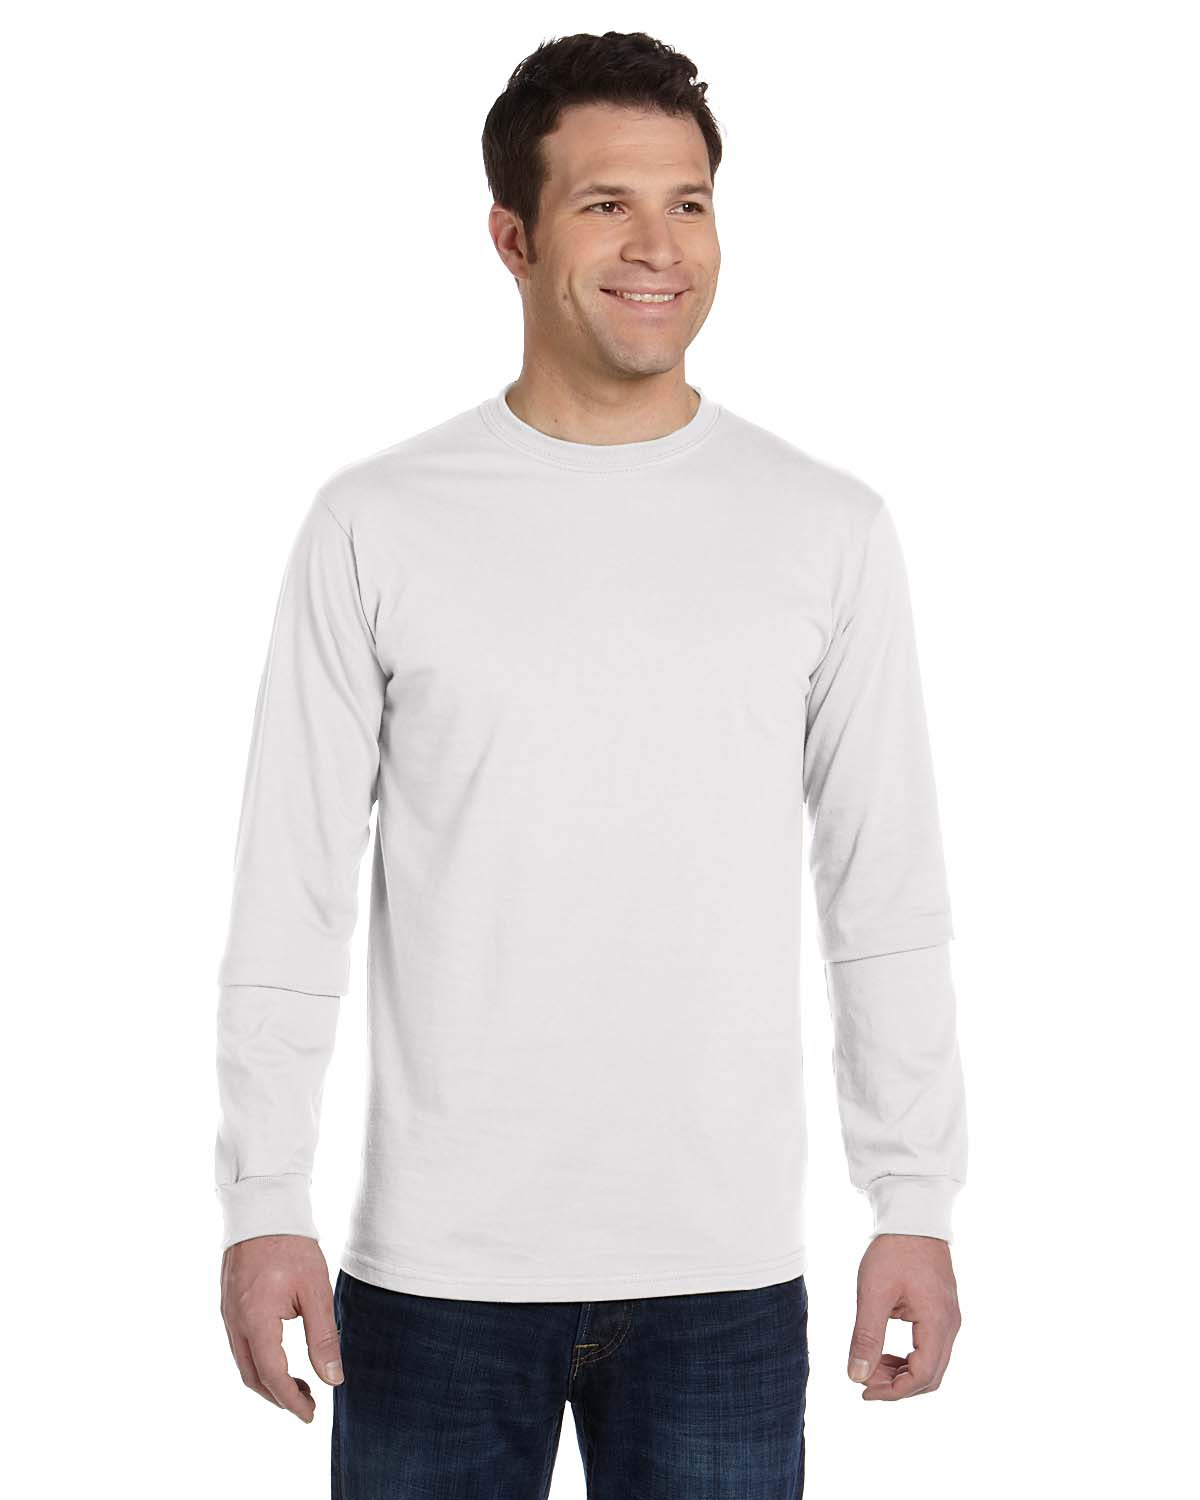 Men 39 S Organic Cotton Ring Spun Long Sleeve T Shirt